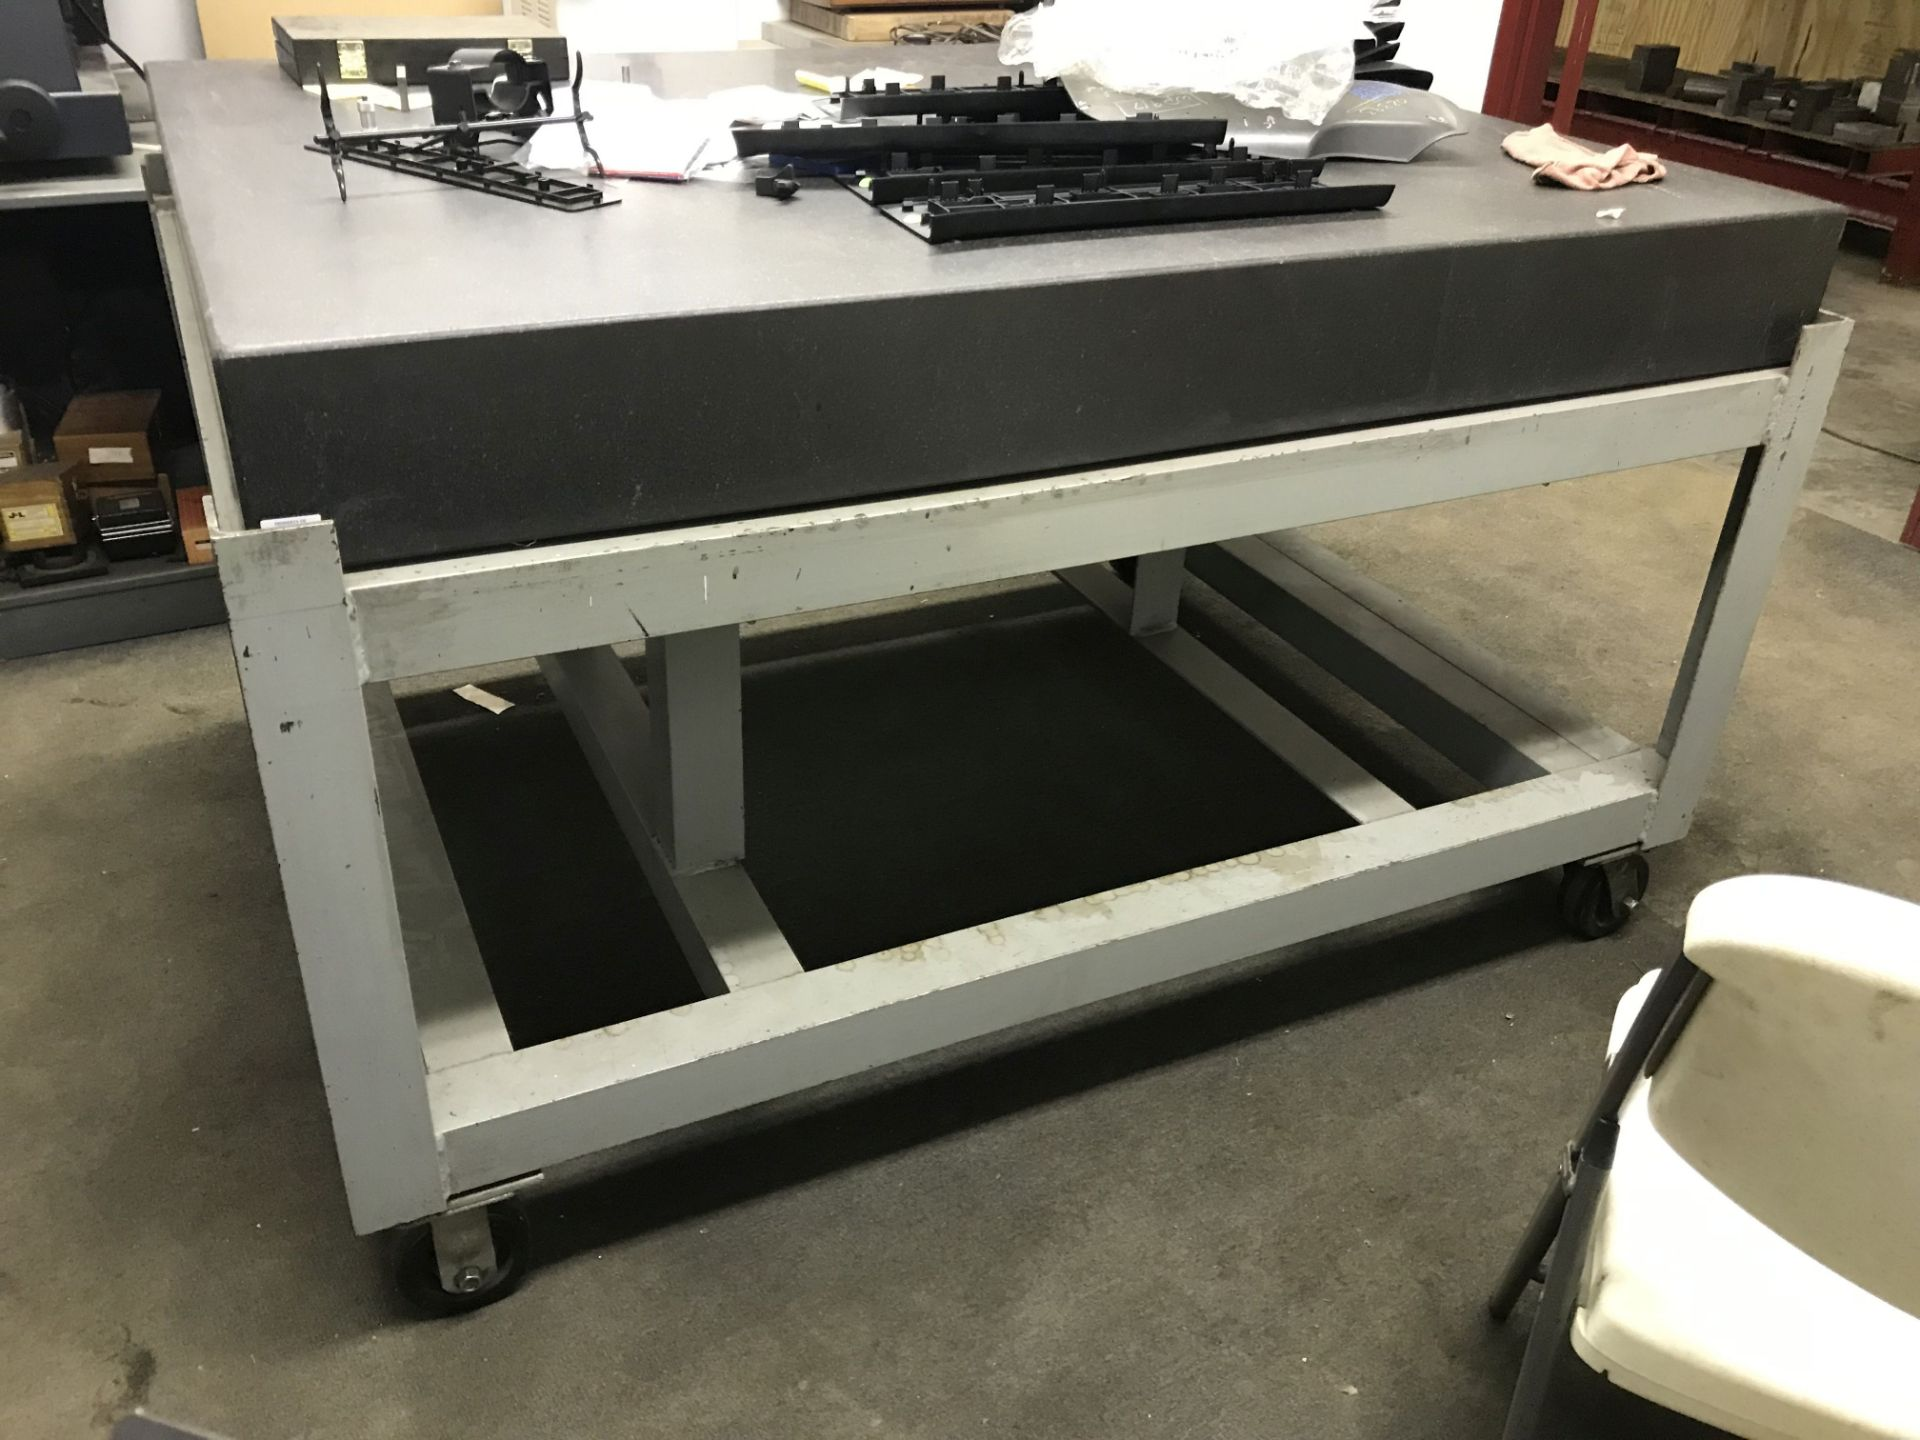 Lot 58 - ROLLING CART WITH SURFACE PLATE, 5' x 4' x 37''T [LOCATION: BUILDING 2]